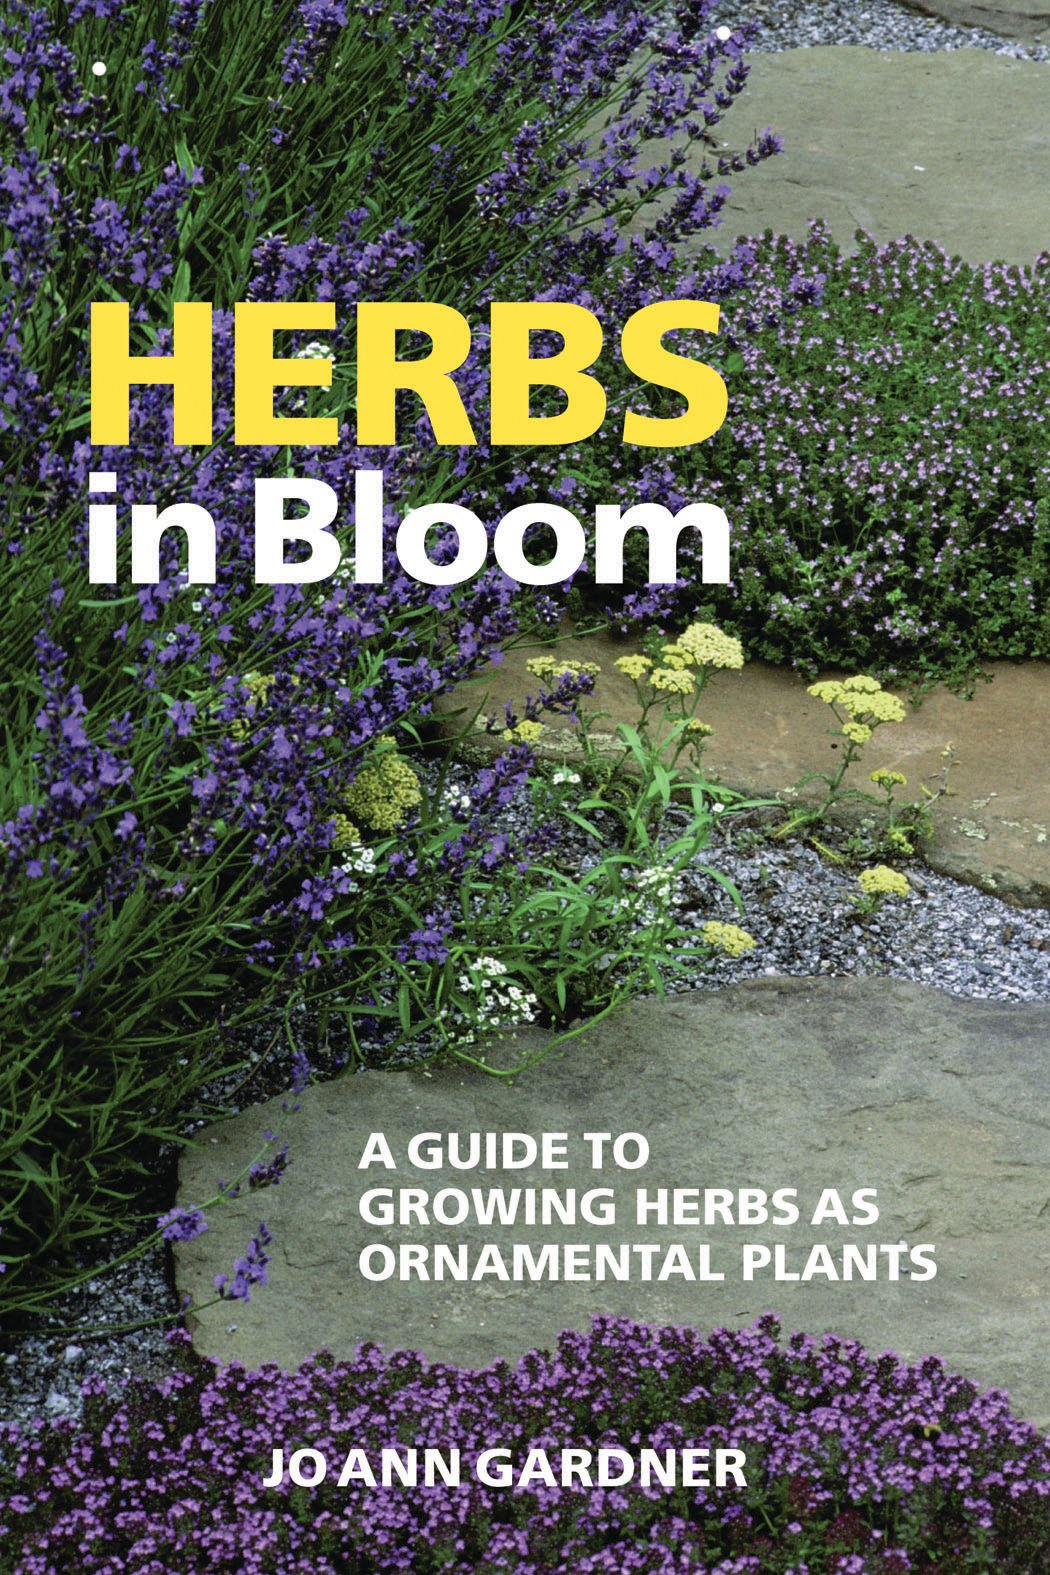 Herbs in Bloom: A Guide to Growing Herbs as Ornamental Plants